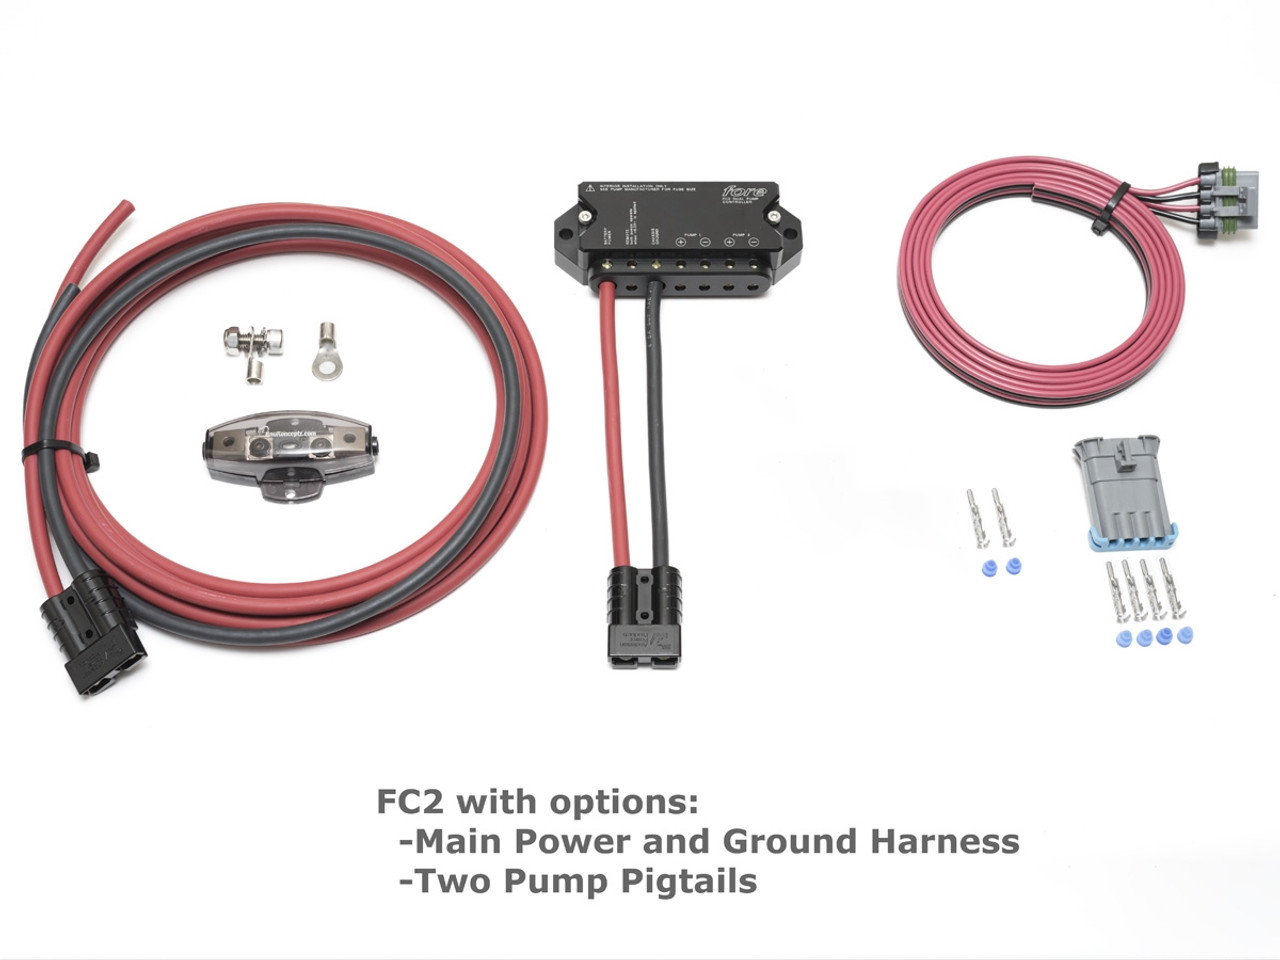 fore innovations fc2 corvette dual fuel pump controller with harness pigtails vette lab [ 1200 x 900 Pixel ]